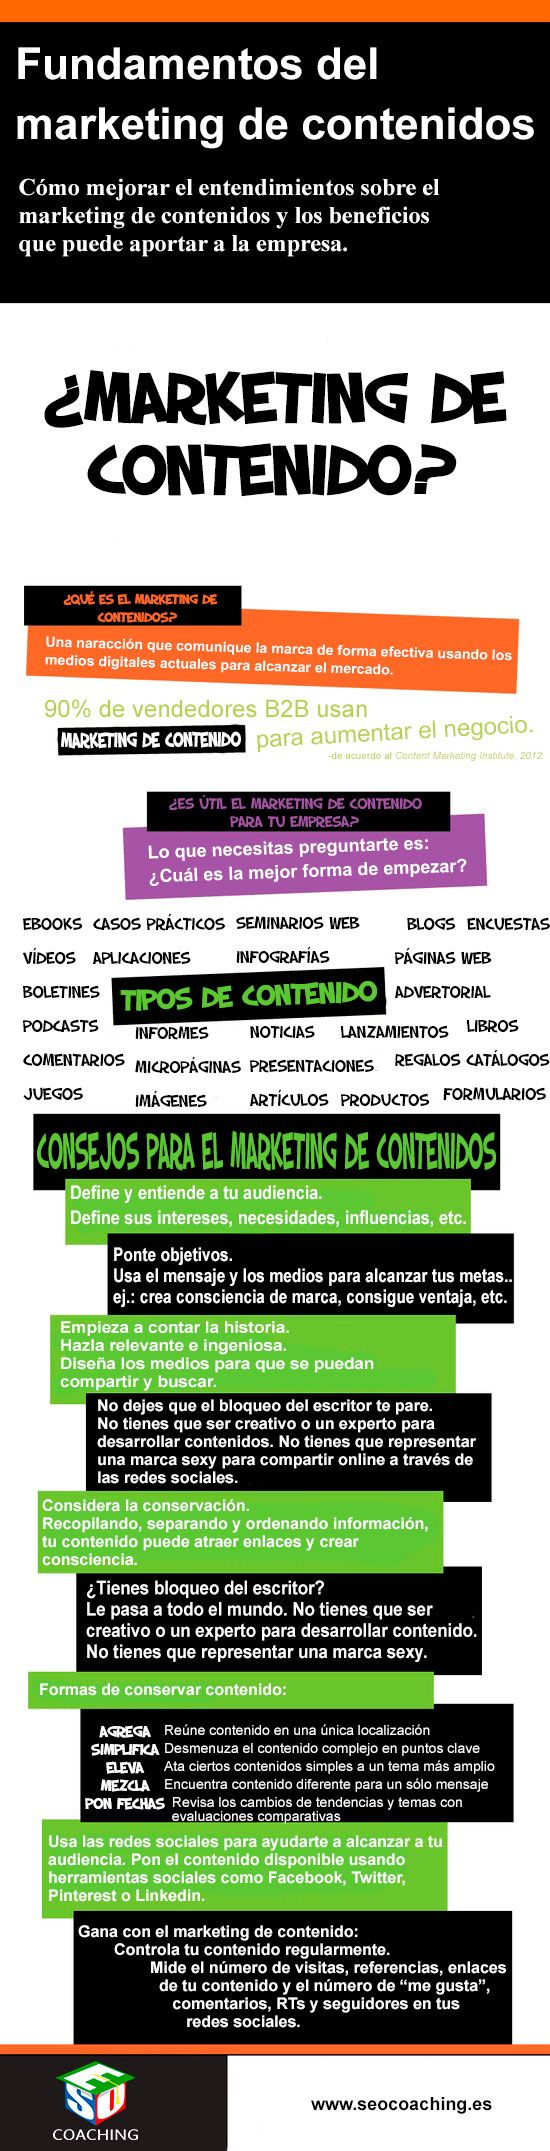 Fundamentos del marketing de contenidos